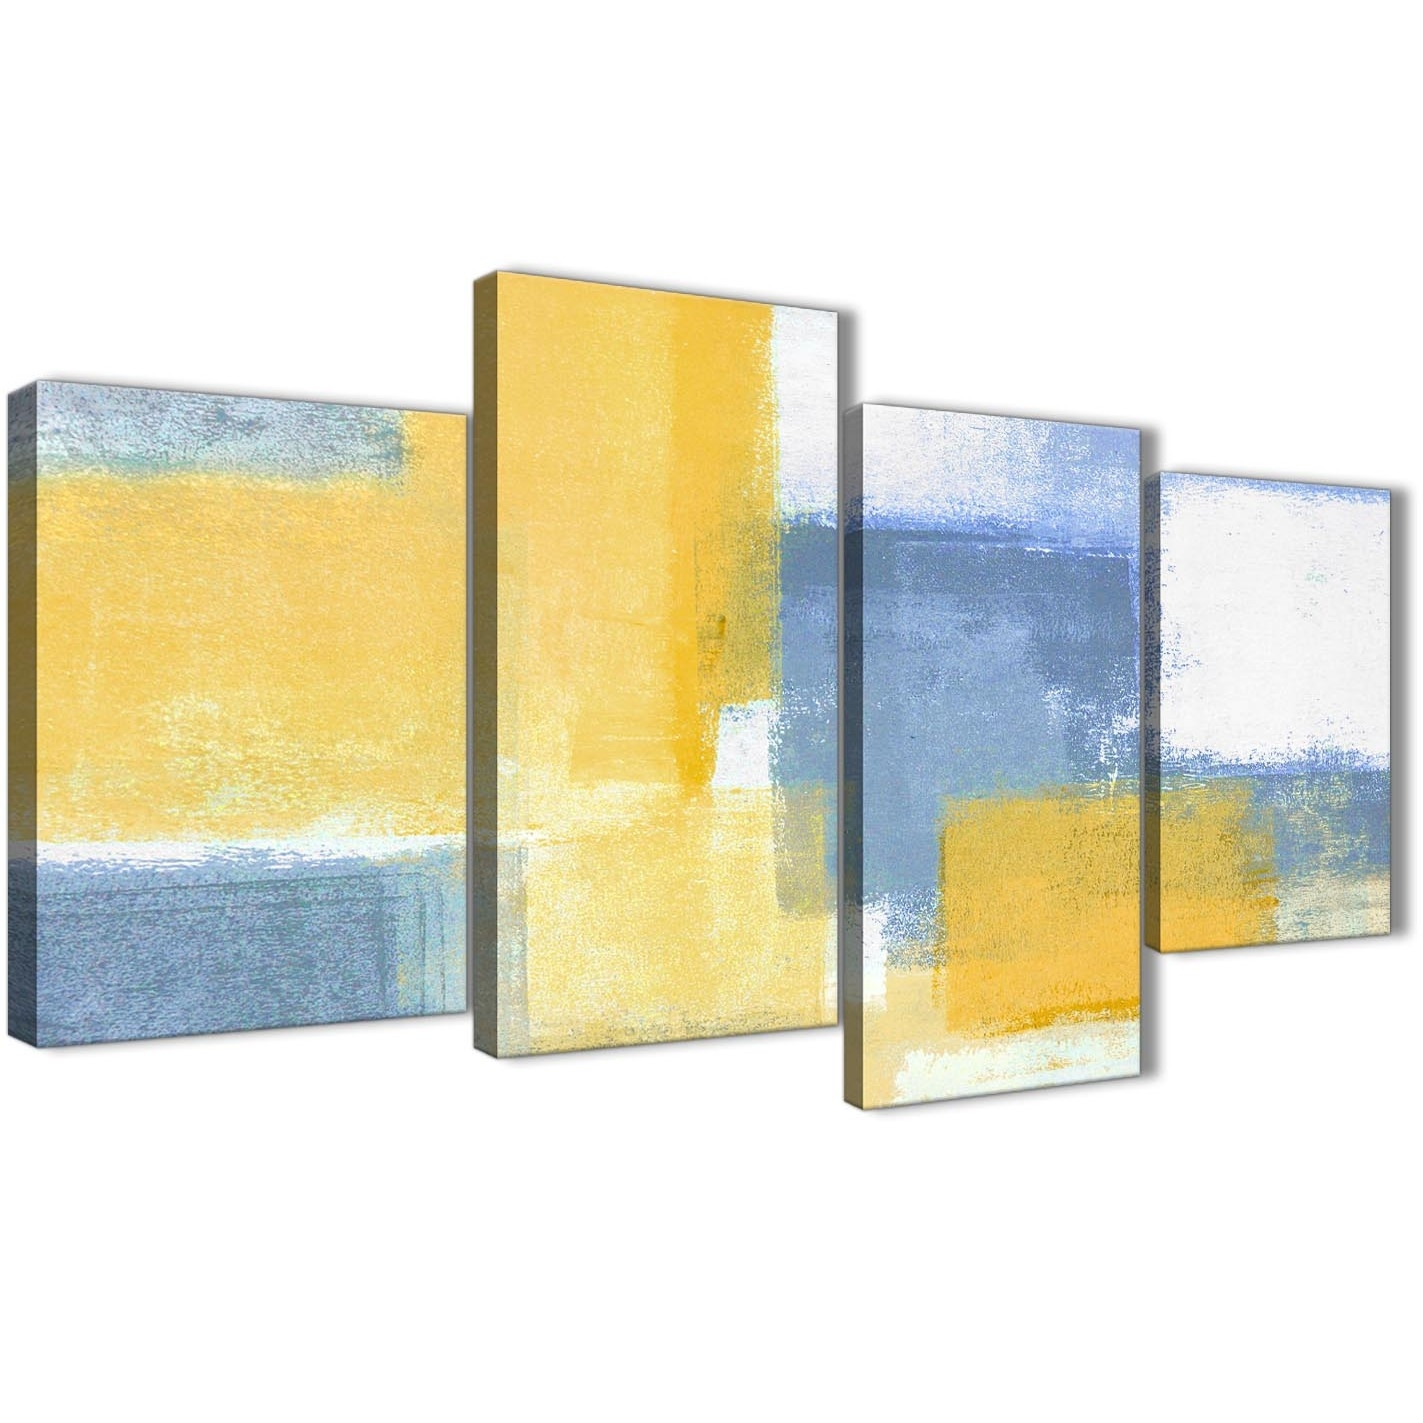 Large Mustard Yellow Blue Abstract Living Room Canvas Pictures Decor Intended For Newest Yellow Wall Art (View 10 of 20)